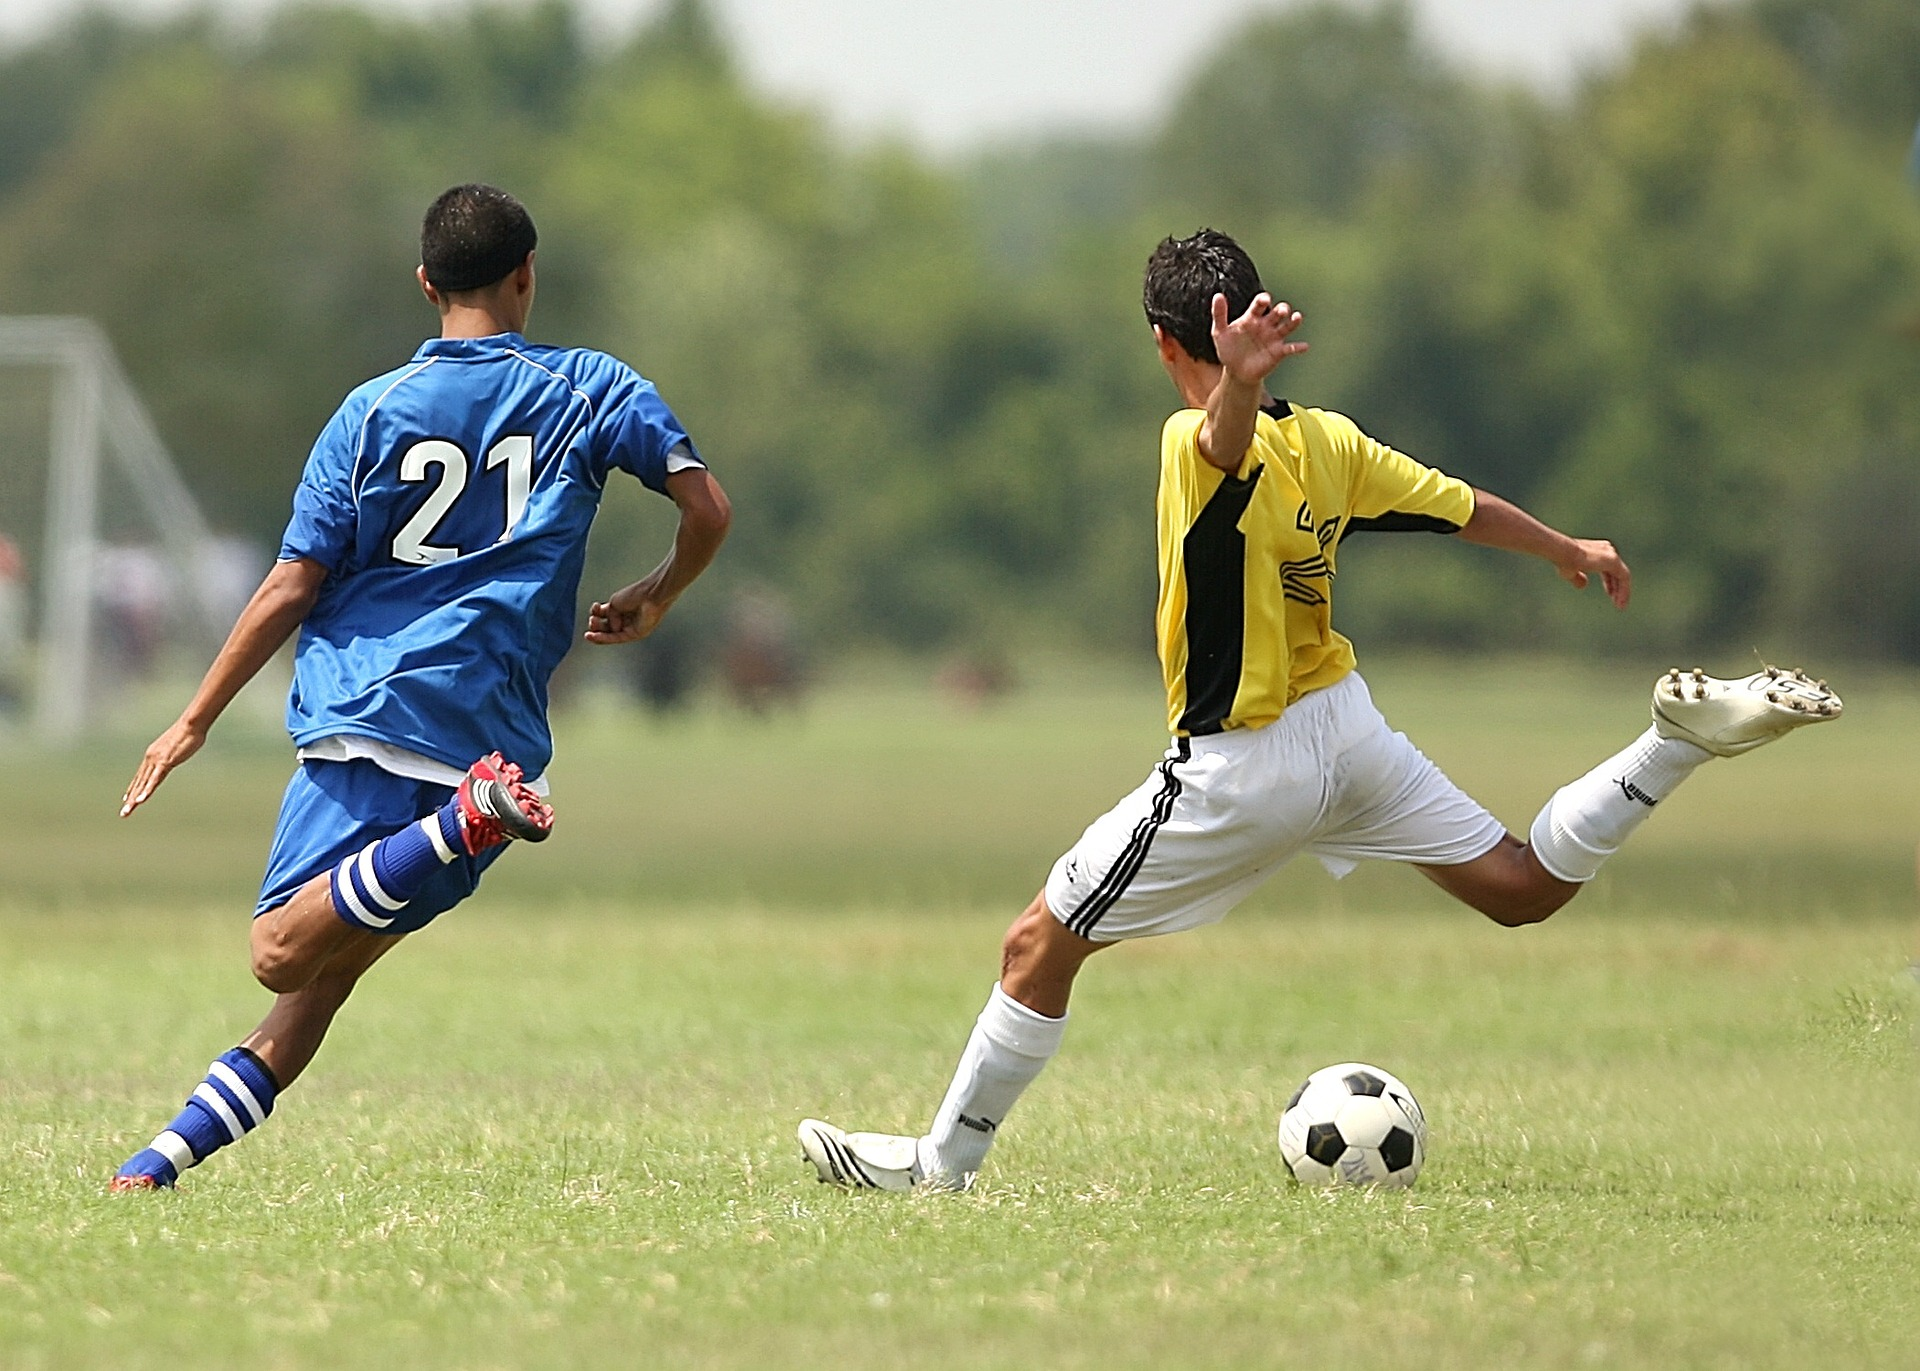 two men play football